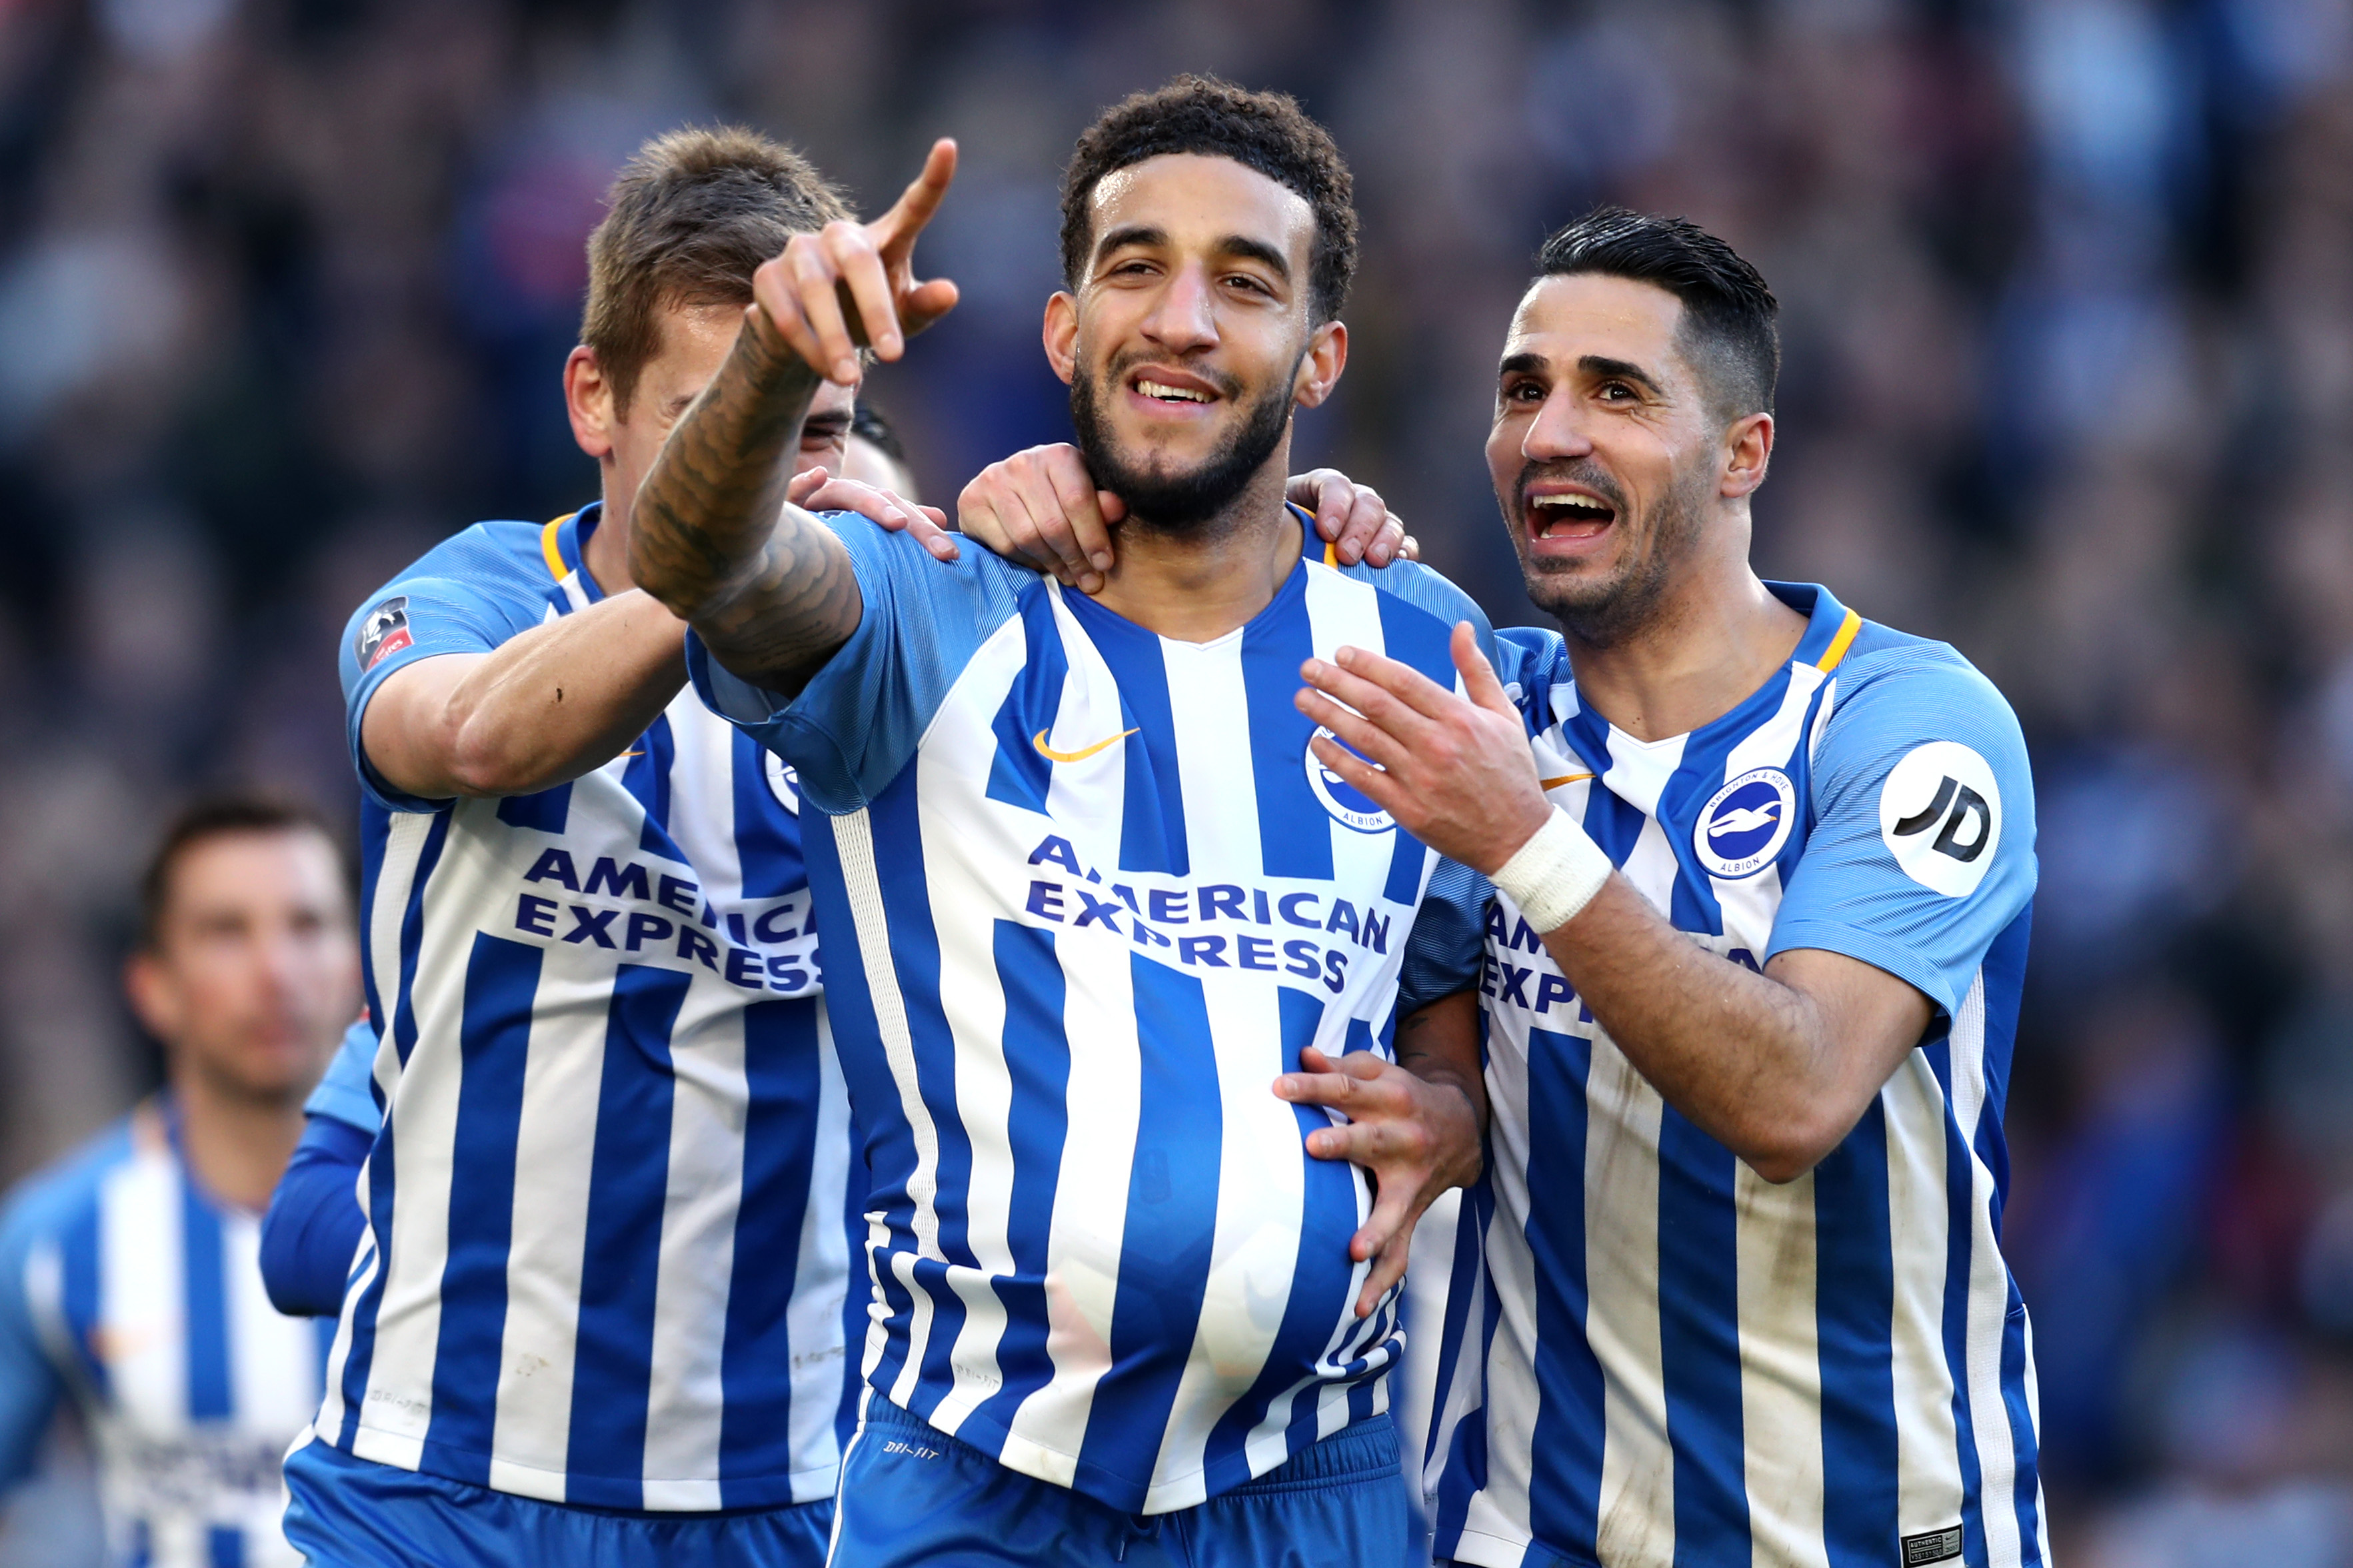 Brighton and Hove Albion v Coventry City - The Emirates FA Cup Fifth Round